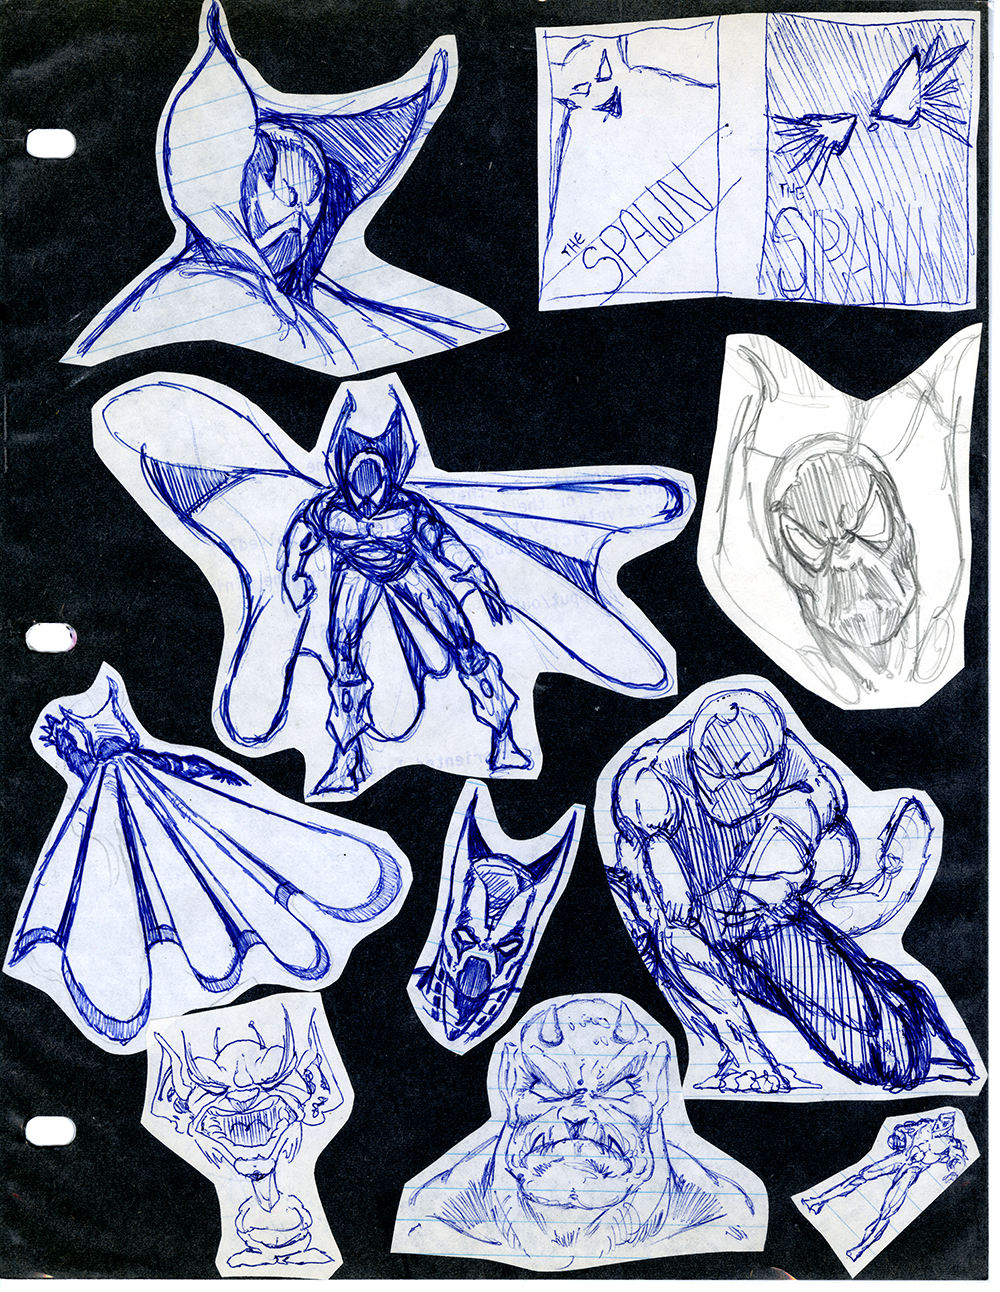 Spawn_sketches_early_001 copy